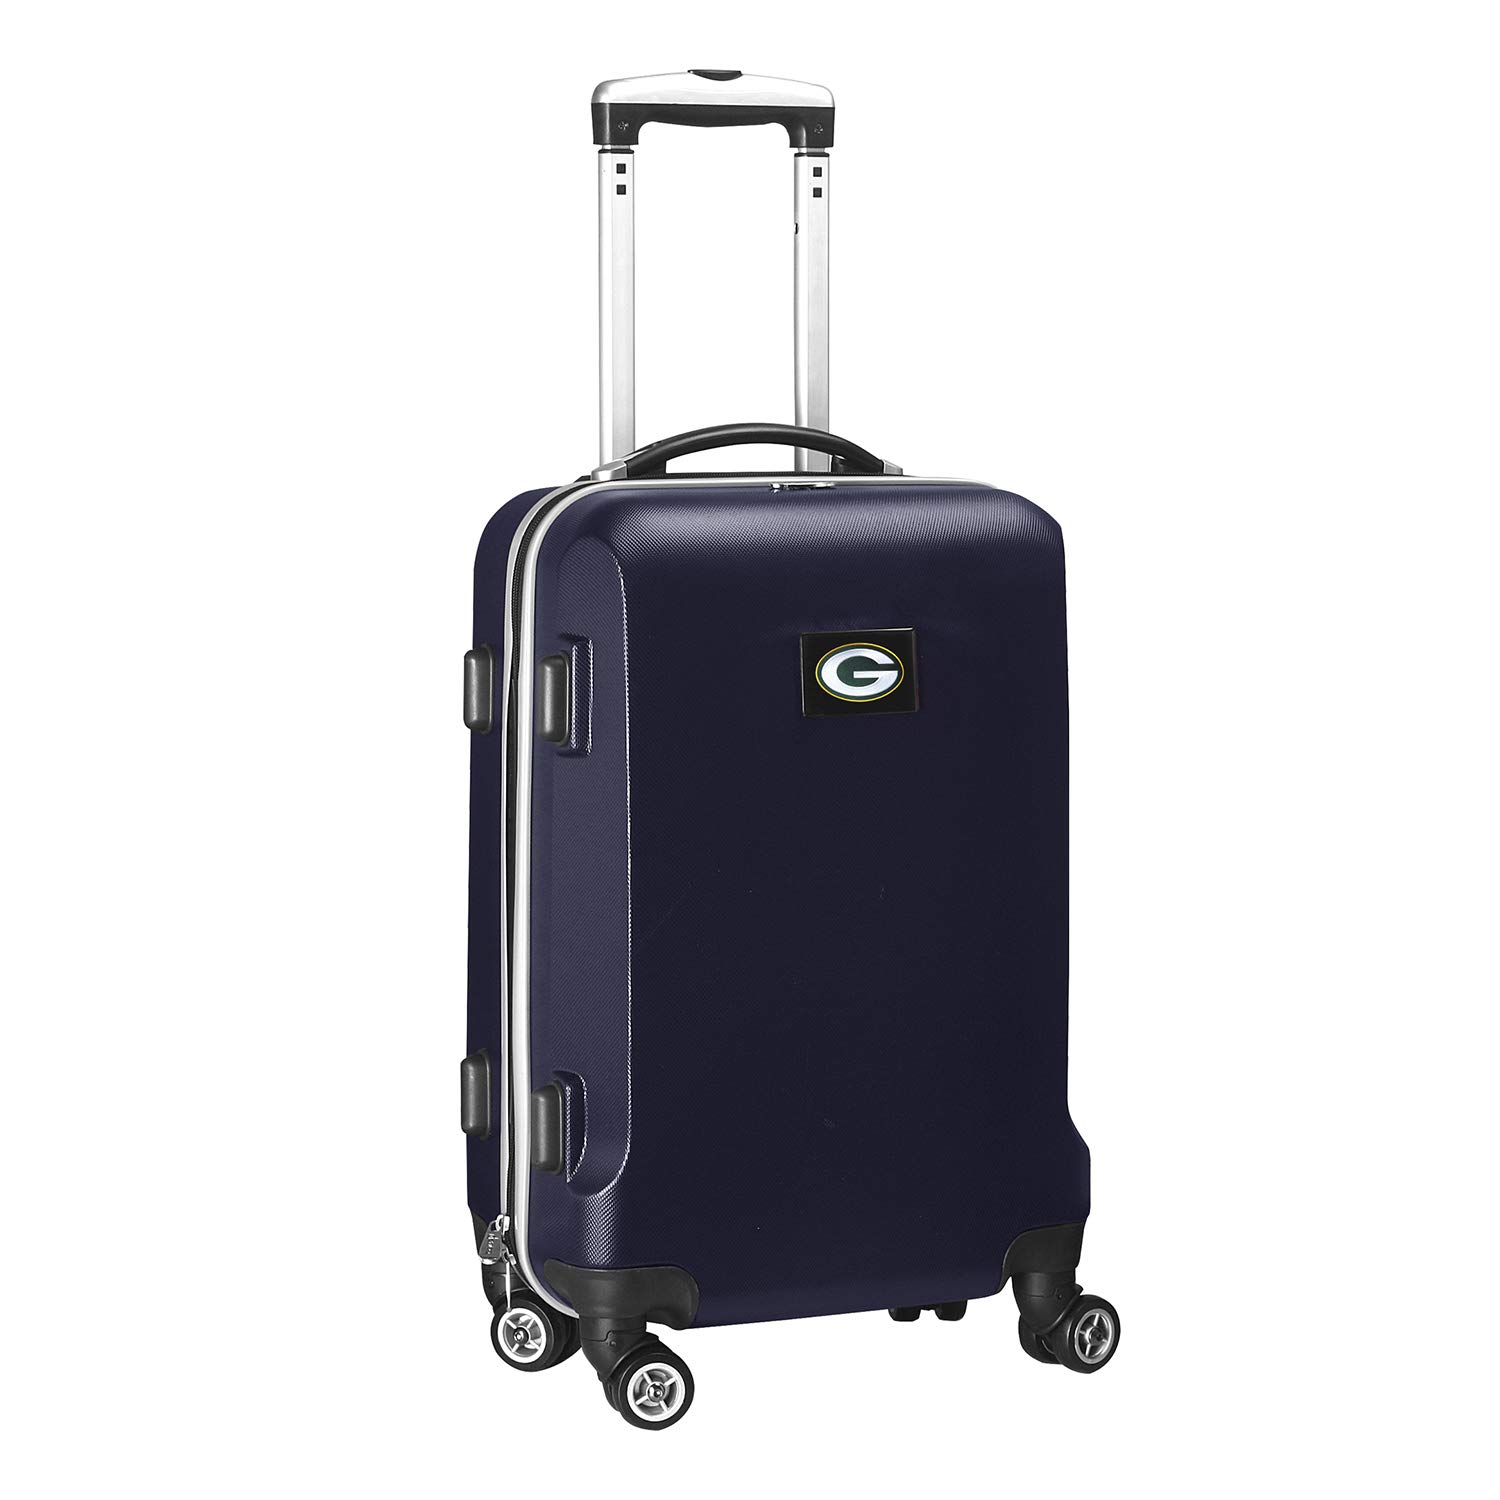 Denco NFL Green Bay Packers Carry-On Hardcase Luggage Spinner, Navy by Denco (Image #1)